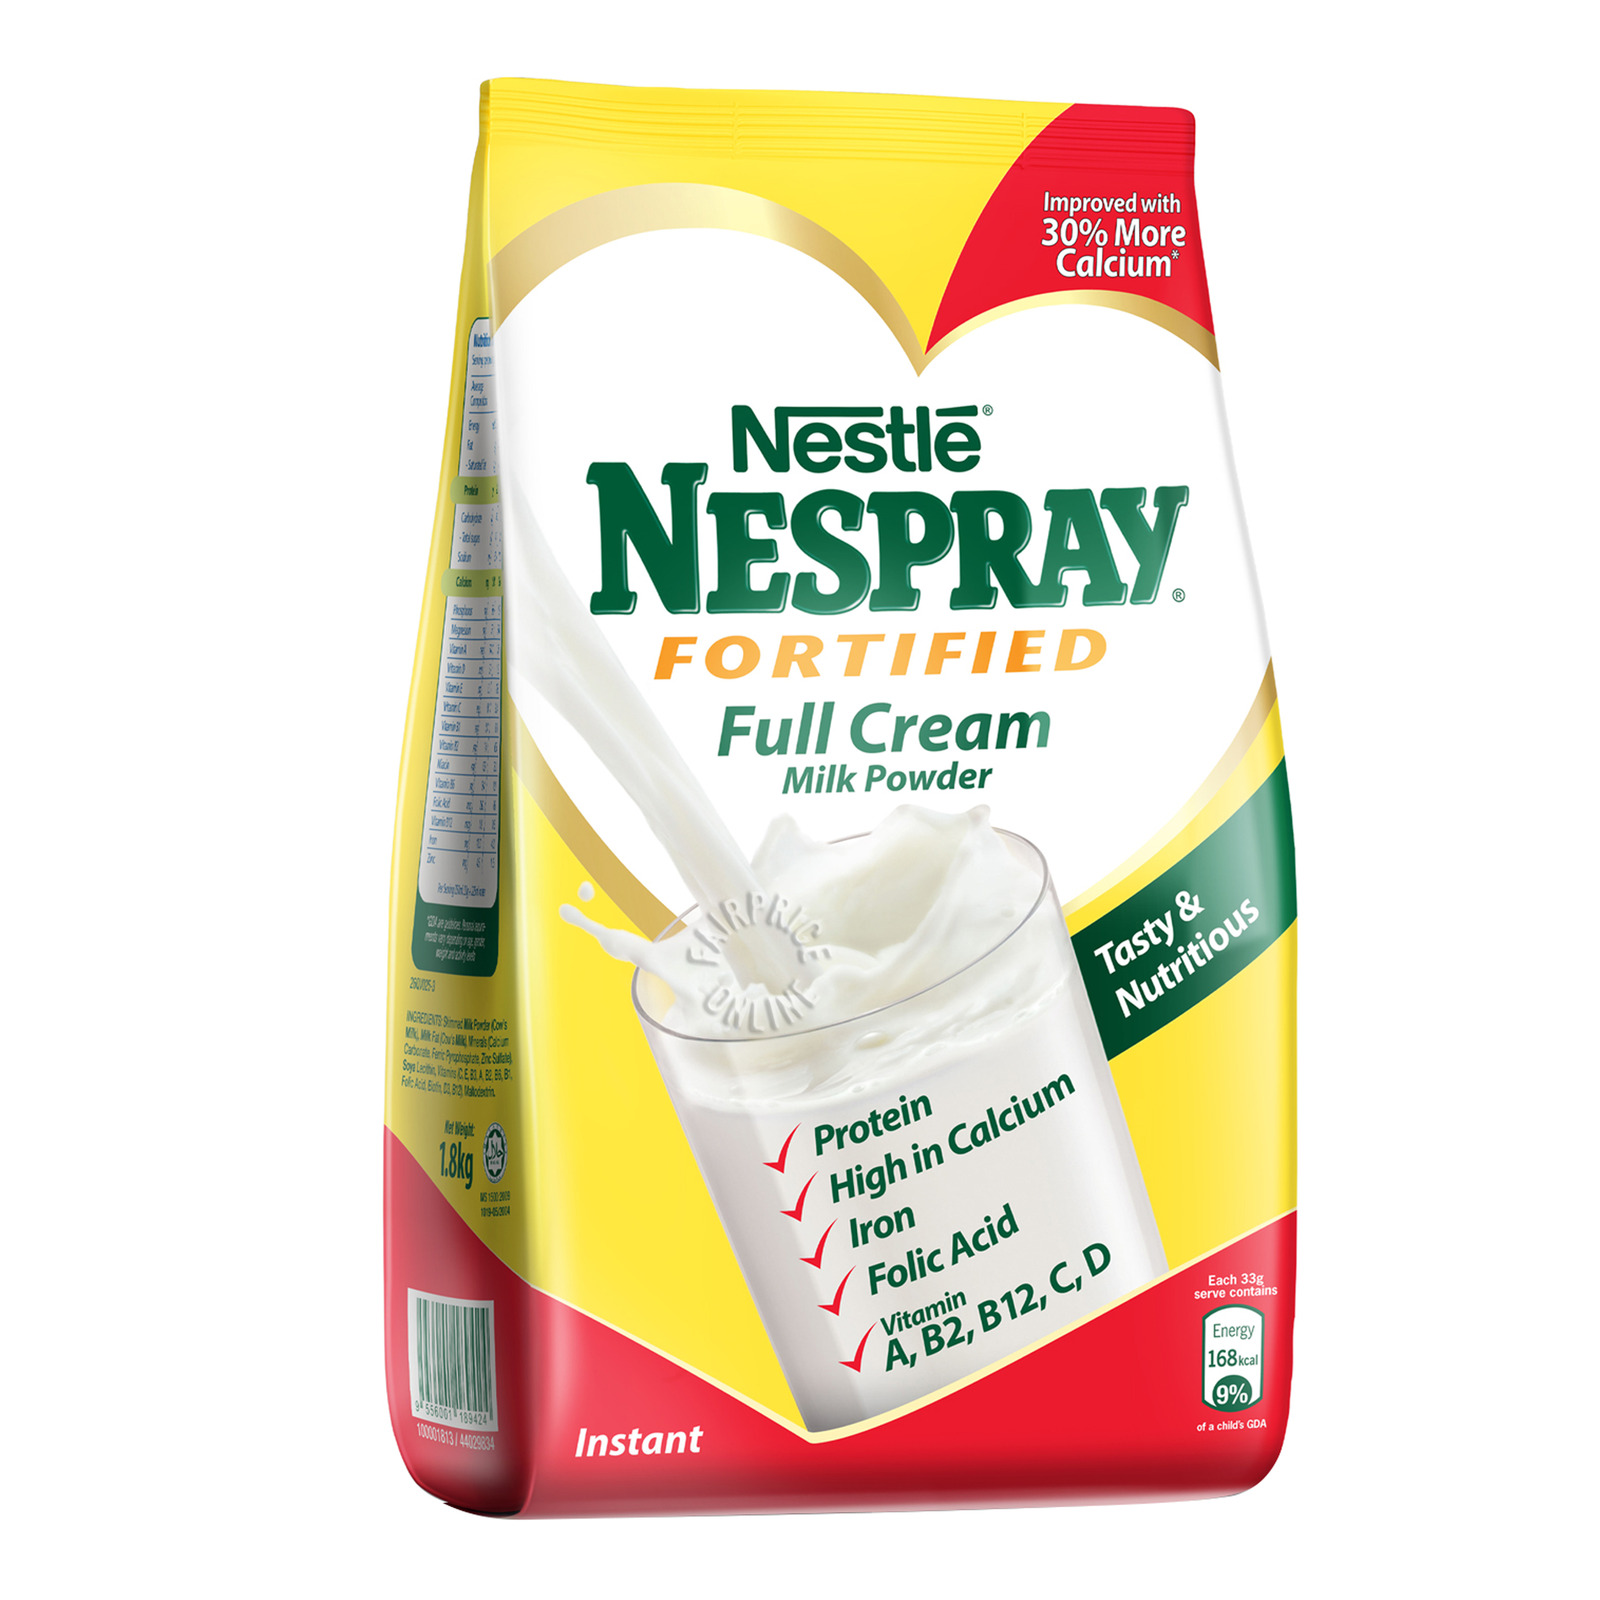 NESPRAY Nespray Fortified Full Cream Milk Powder 1.8kg